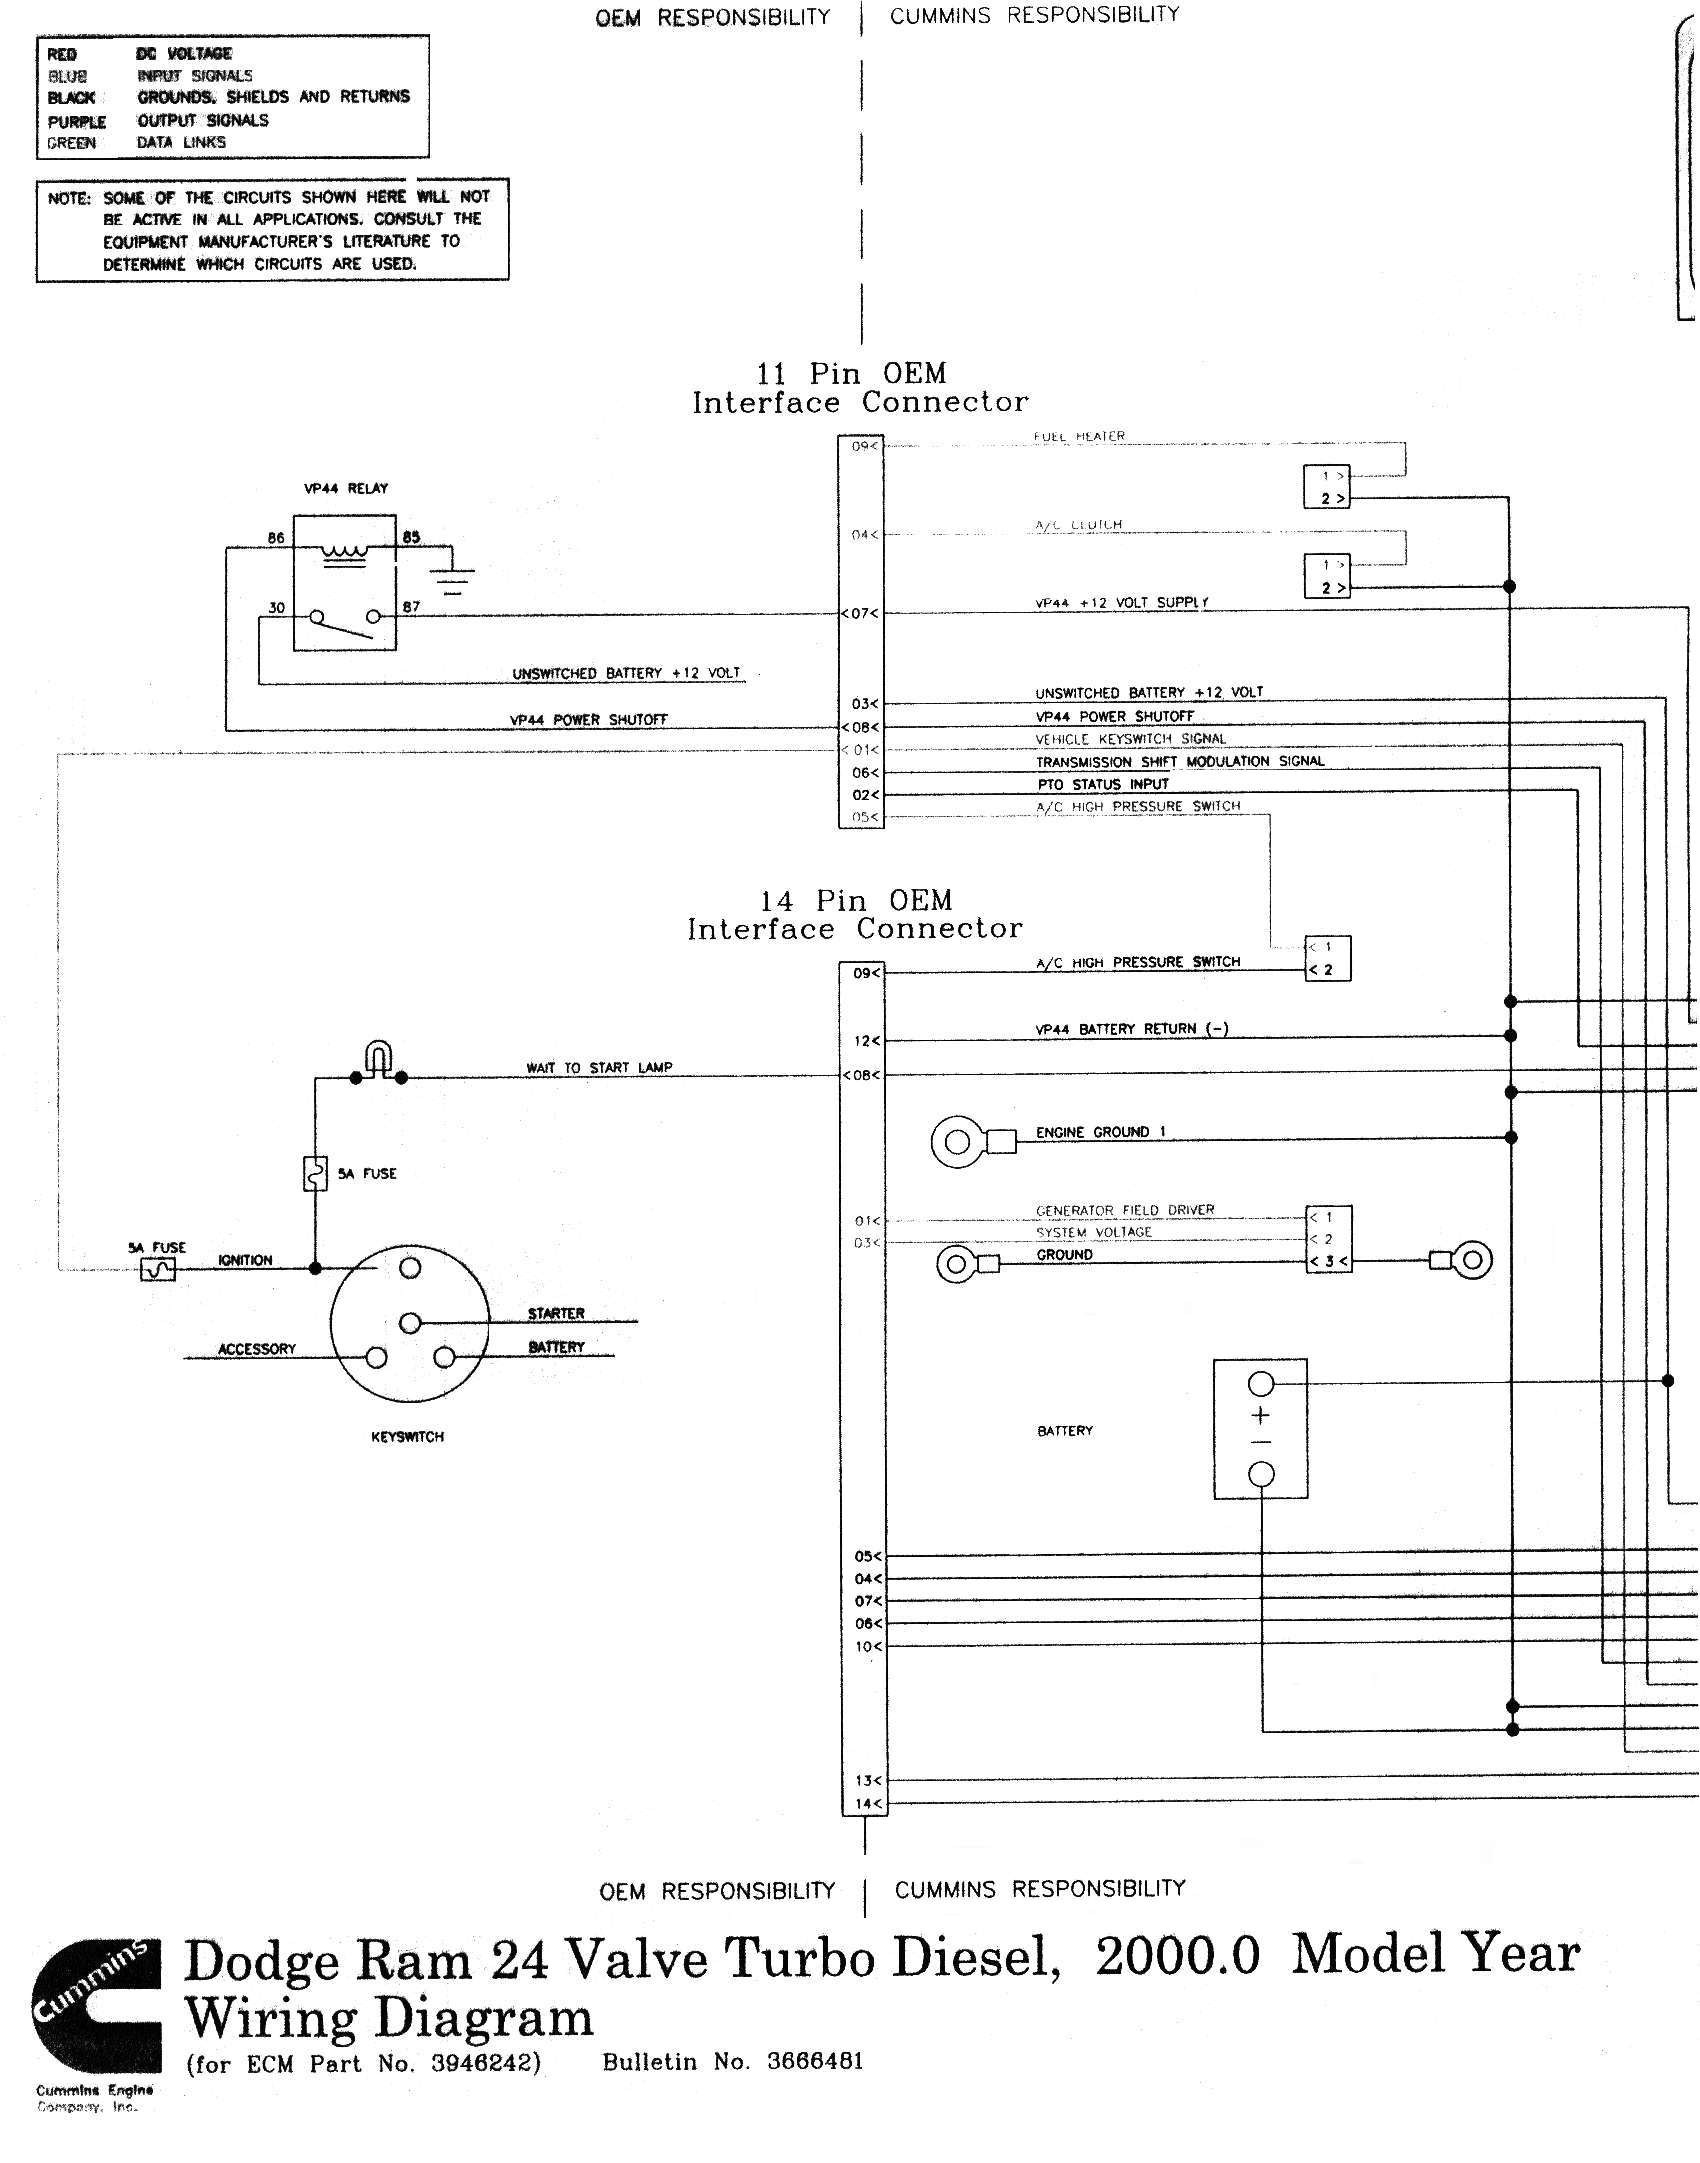 1995 Dodge sel Wiring Diagram - LN1 Wiring Diagram on dodge repair diagrams, dodge cooling system diagram, dodge stratus electrical diagrams, dodge charger diagram, dodge ram rear door wiring harness, dodge fuel filter replacement, dodge stereo wiring, dodge exhaust diagrams, dodge ignition system, dodge blueprints, 2003 dodge dakota diagrams, dodge brake line diagrams, dodge door sill plates, dodge ram 1500 electrical diagrams, dodge fuel system diagram, dodge truck wiring, dodge water pump replacement, dodge oil pressure sending unit, dodge steering diagram, dodge engine,